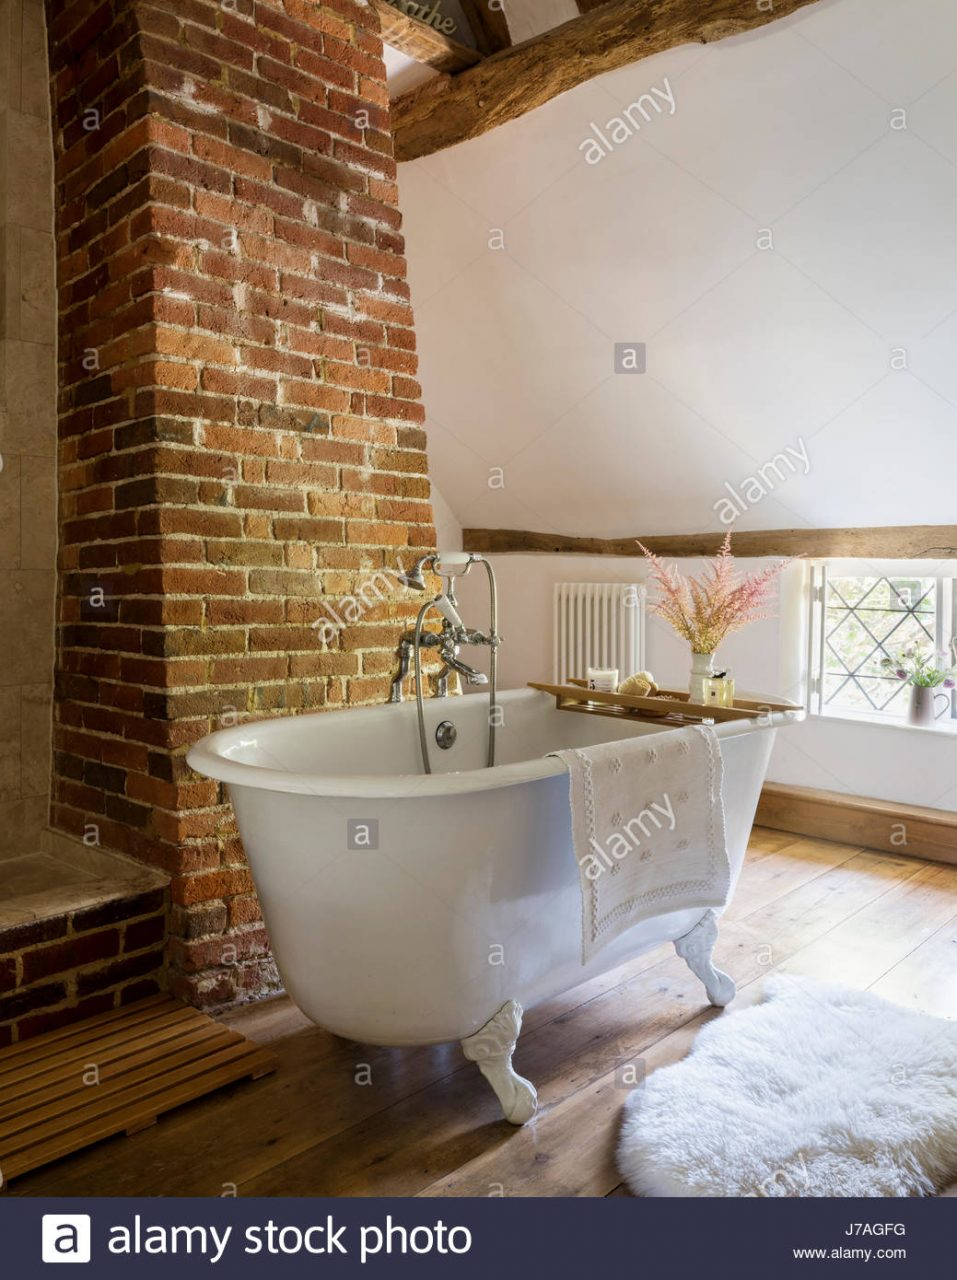 Vaulted Bathroom With Ancient Beams Exposed Brick Wall And Roll Top